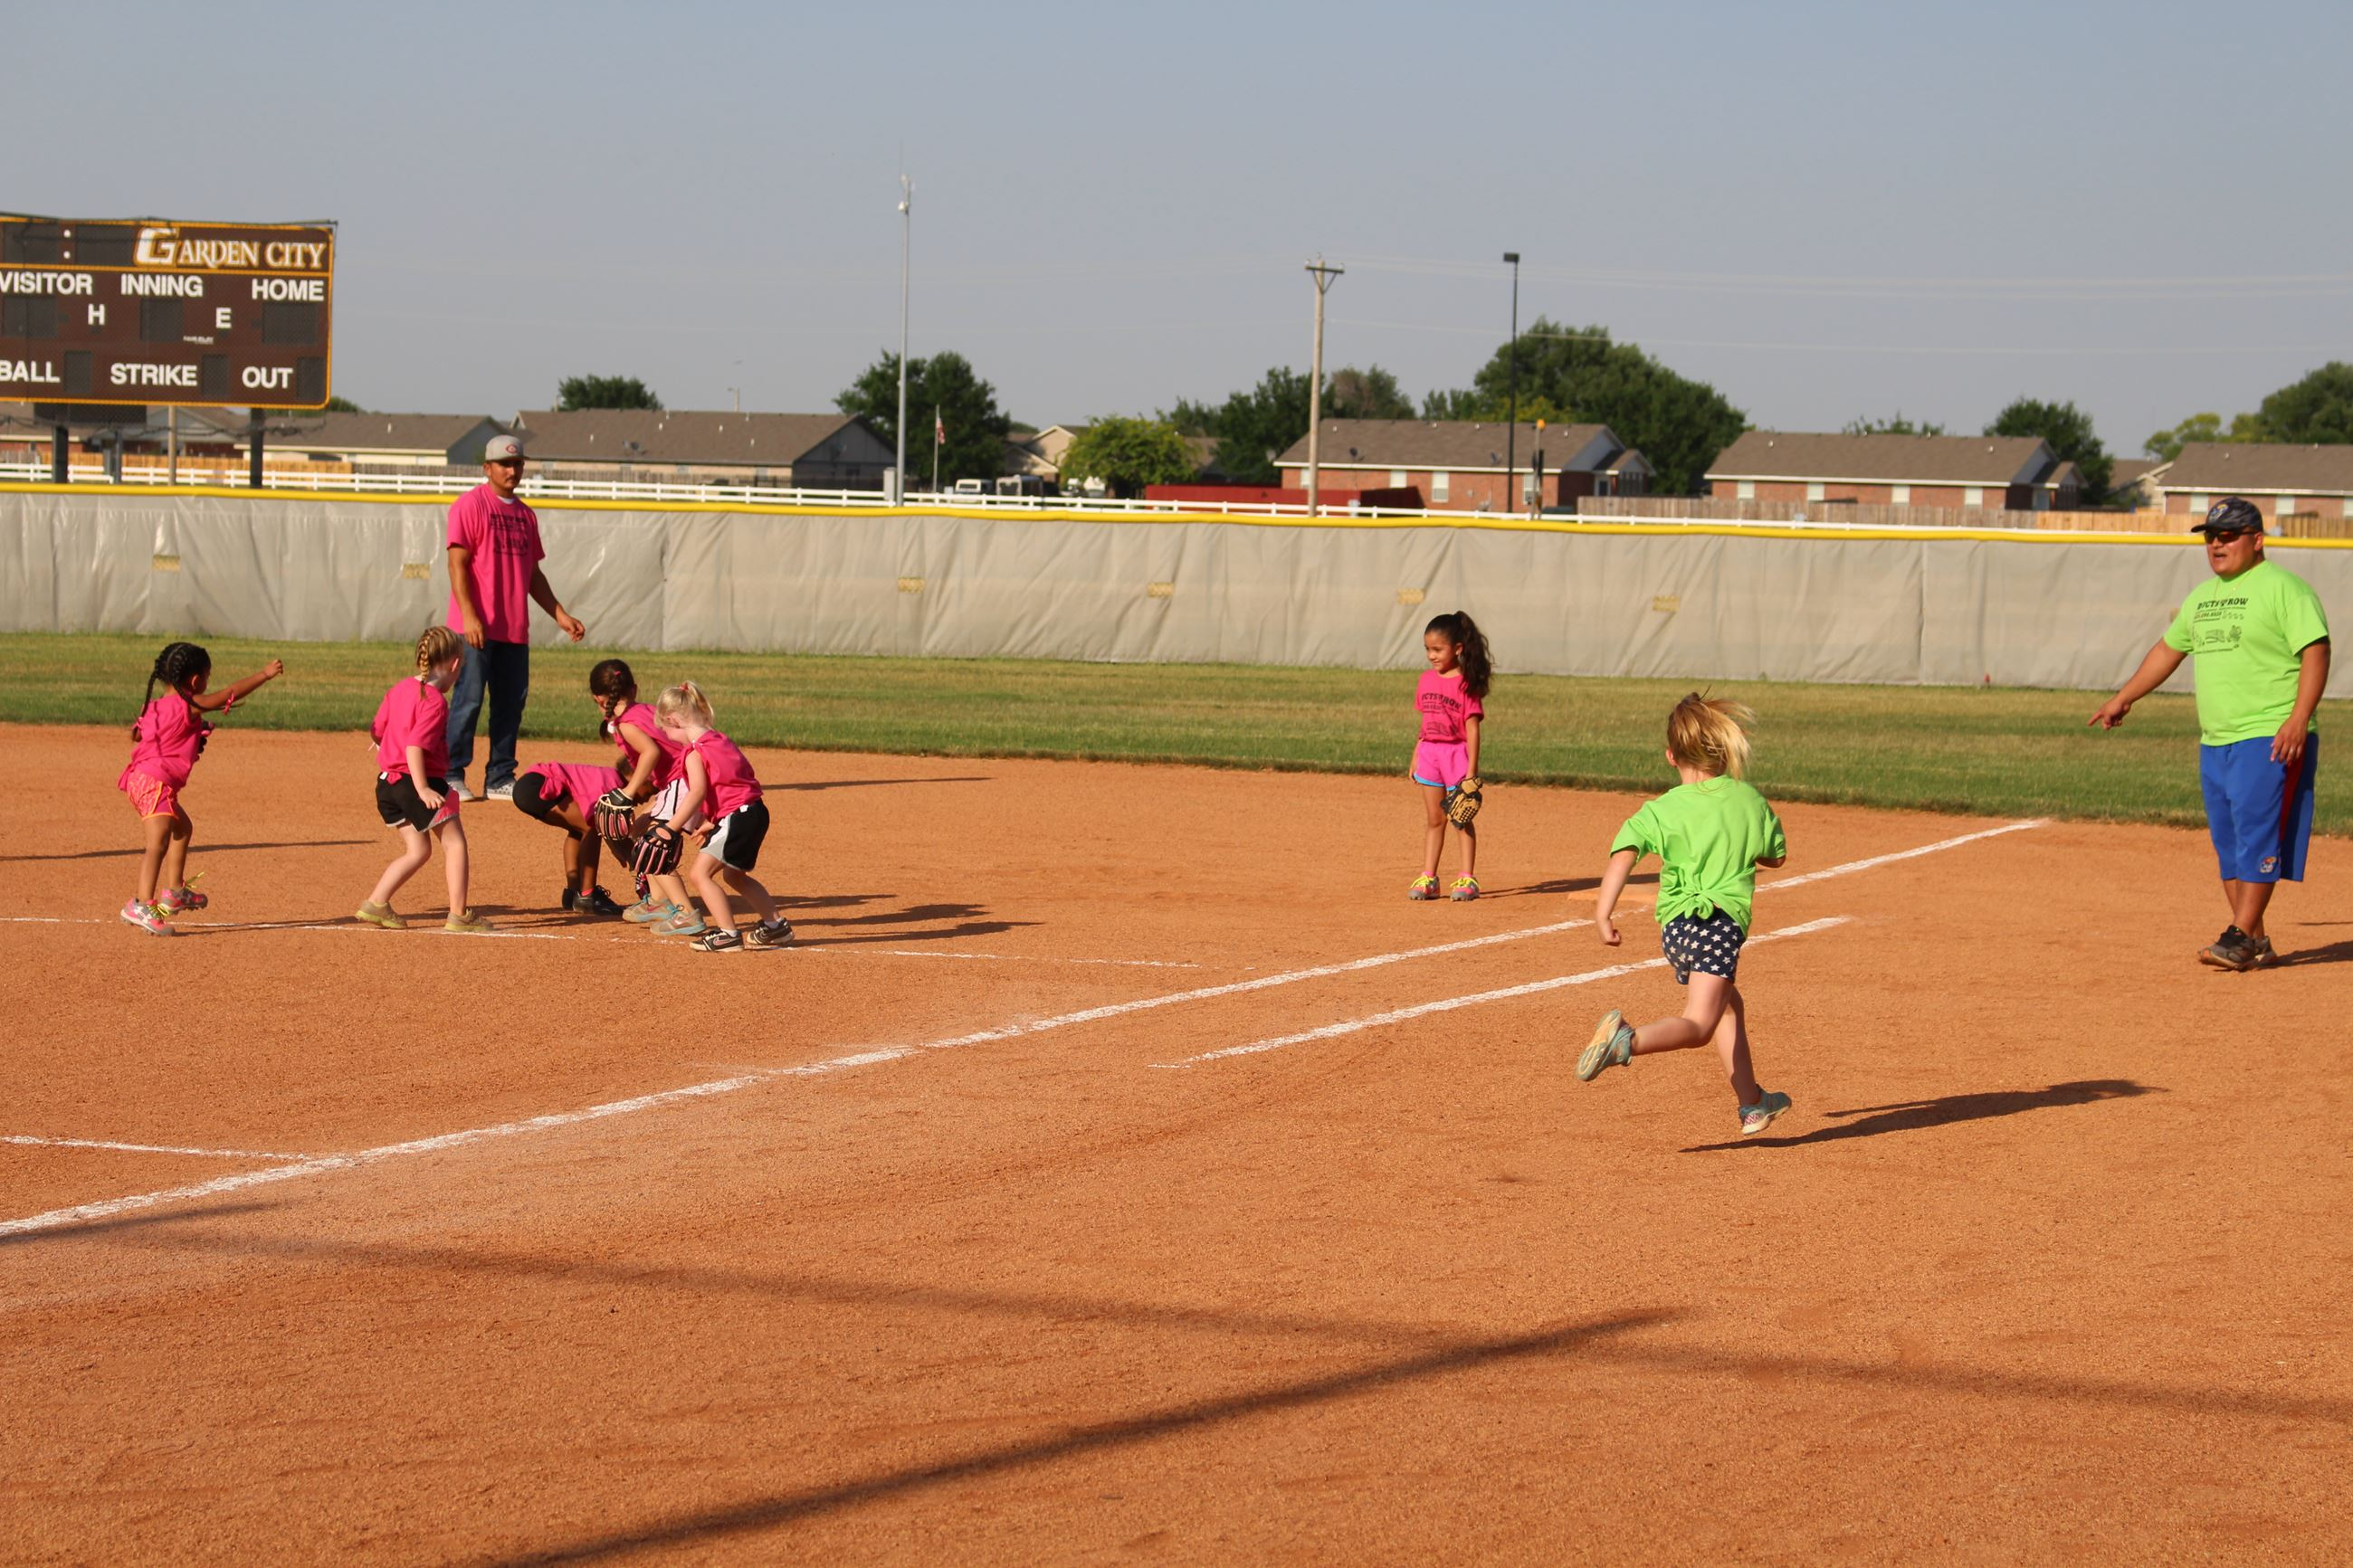 Girl running to first while the ball is being fielded by a group of players